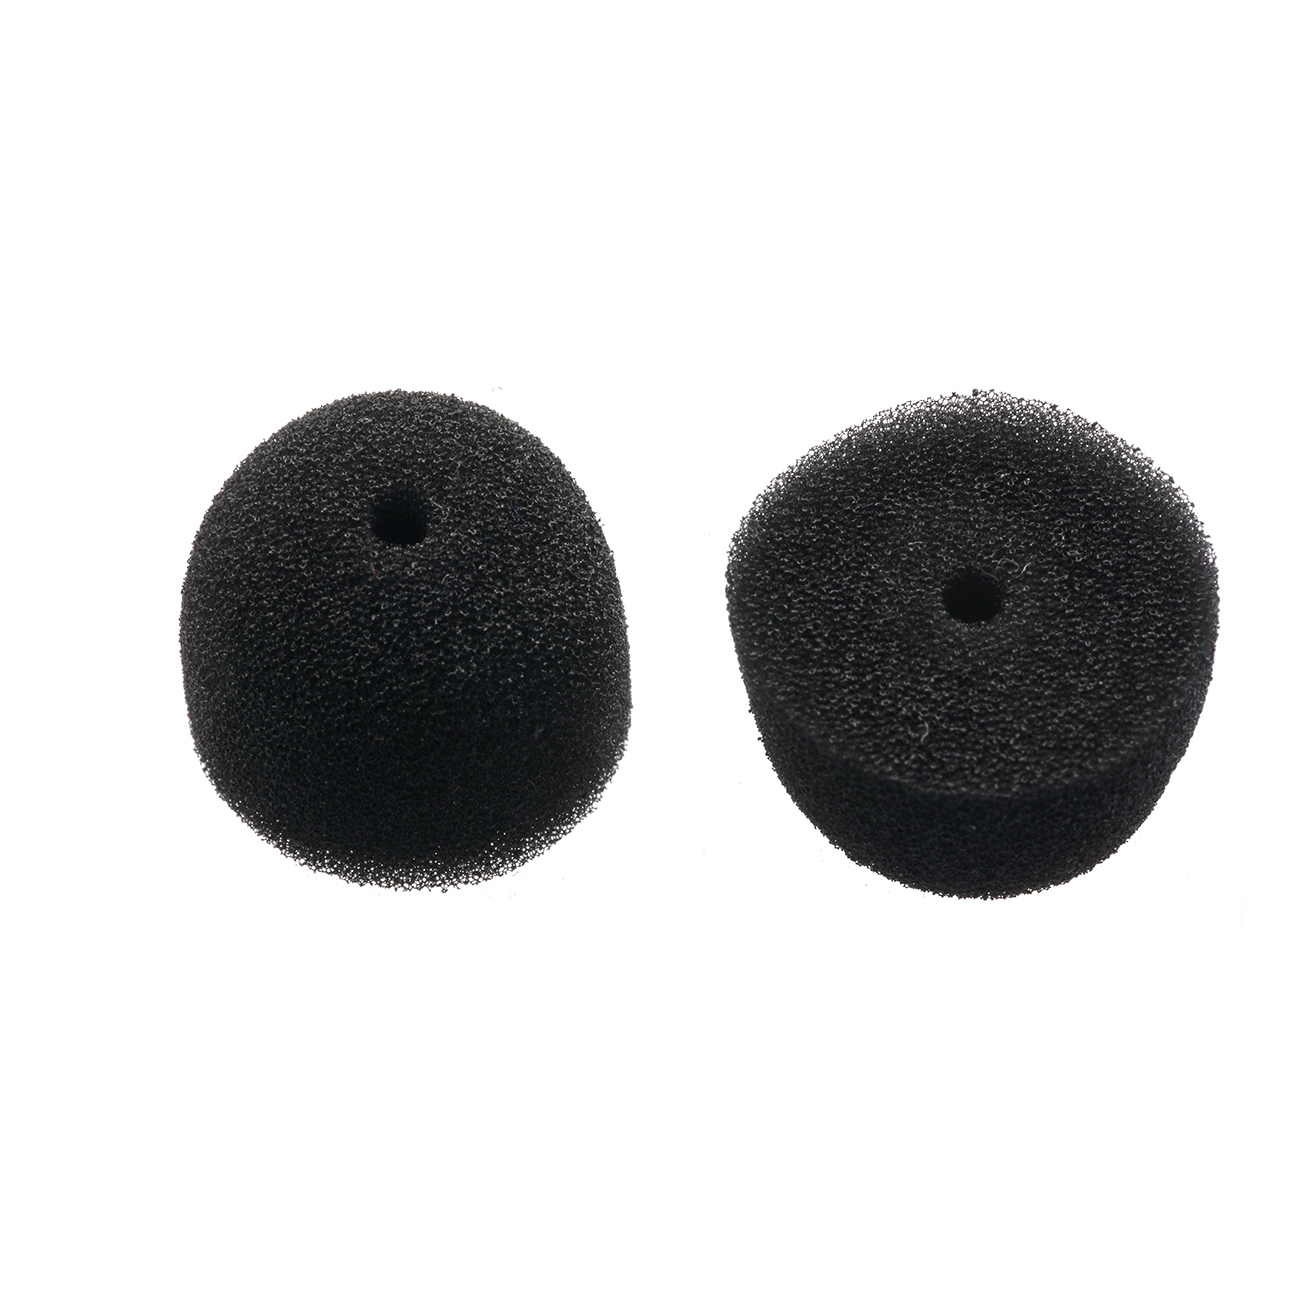 Earpad foam black